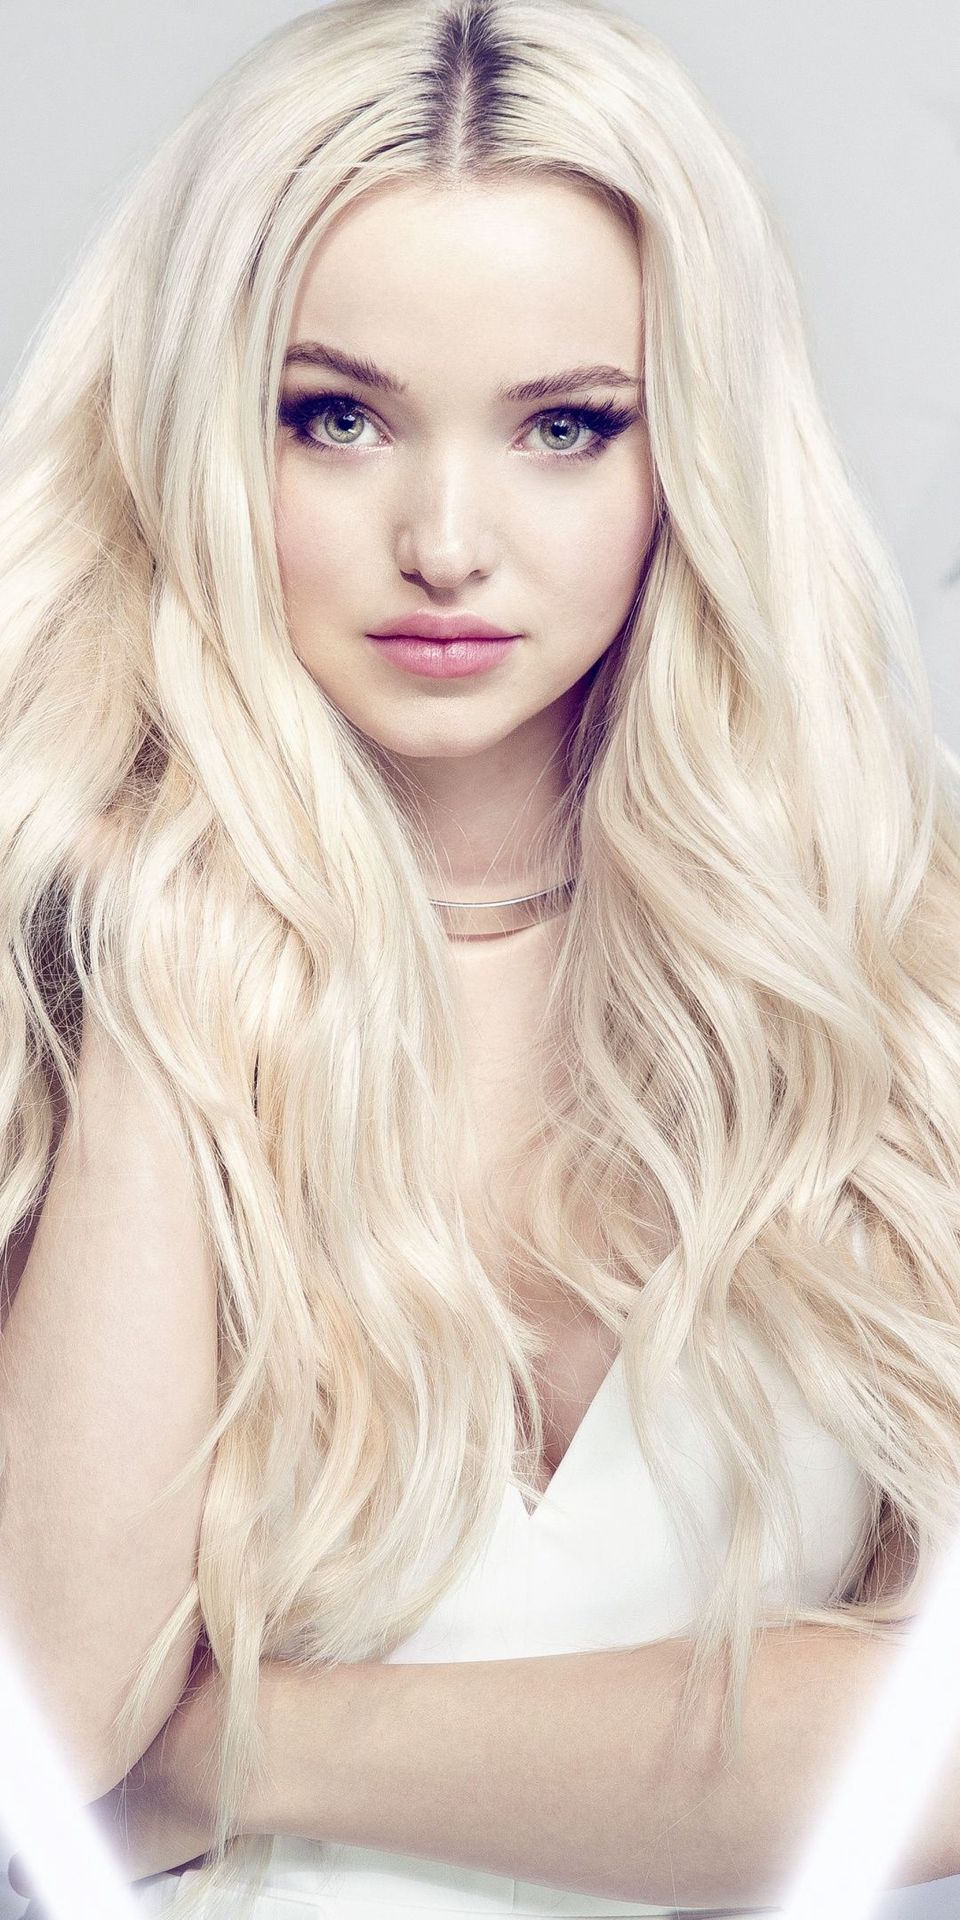 The Human Countess J Hale In 2020 Blonde Actresses Dove Cameron Style Dove Cameron